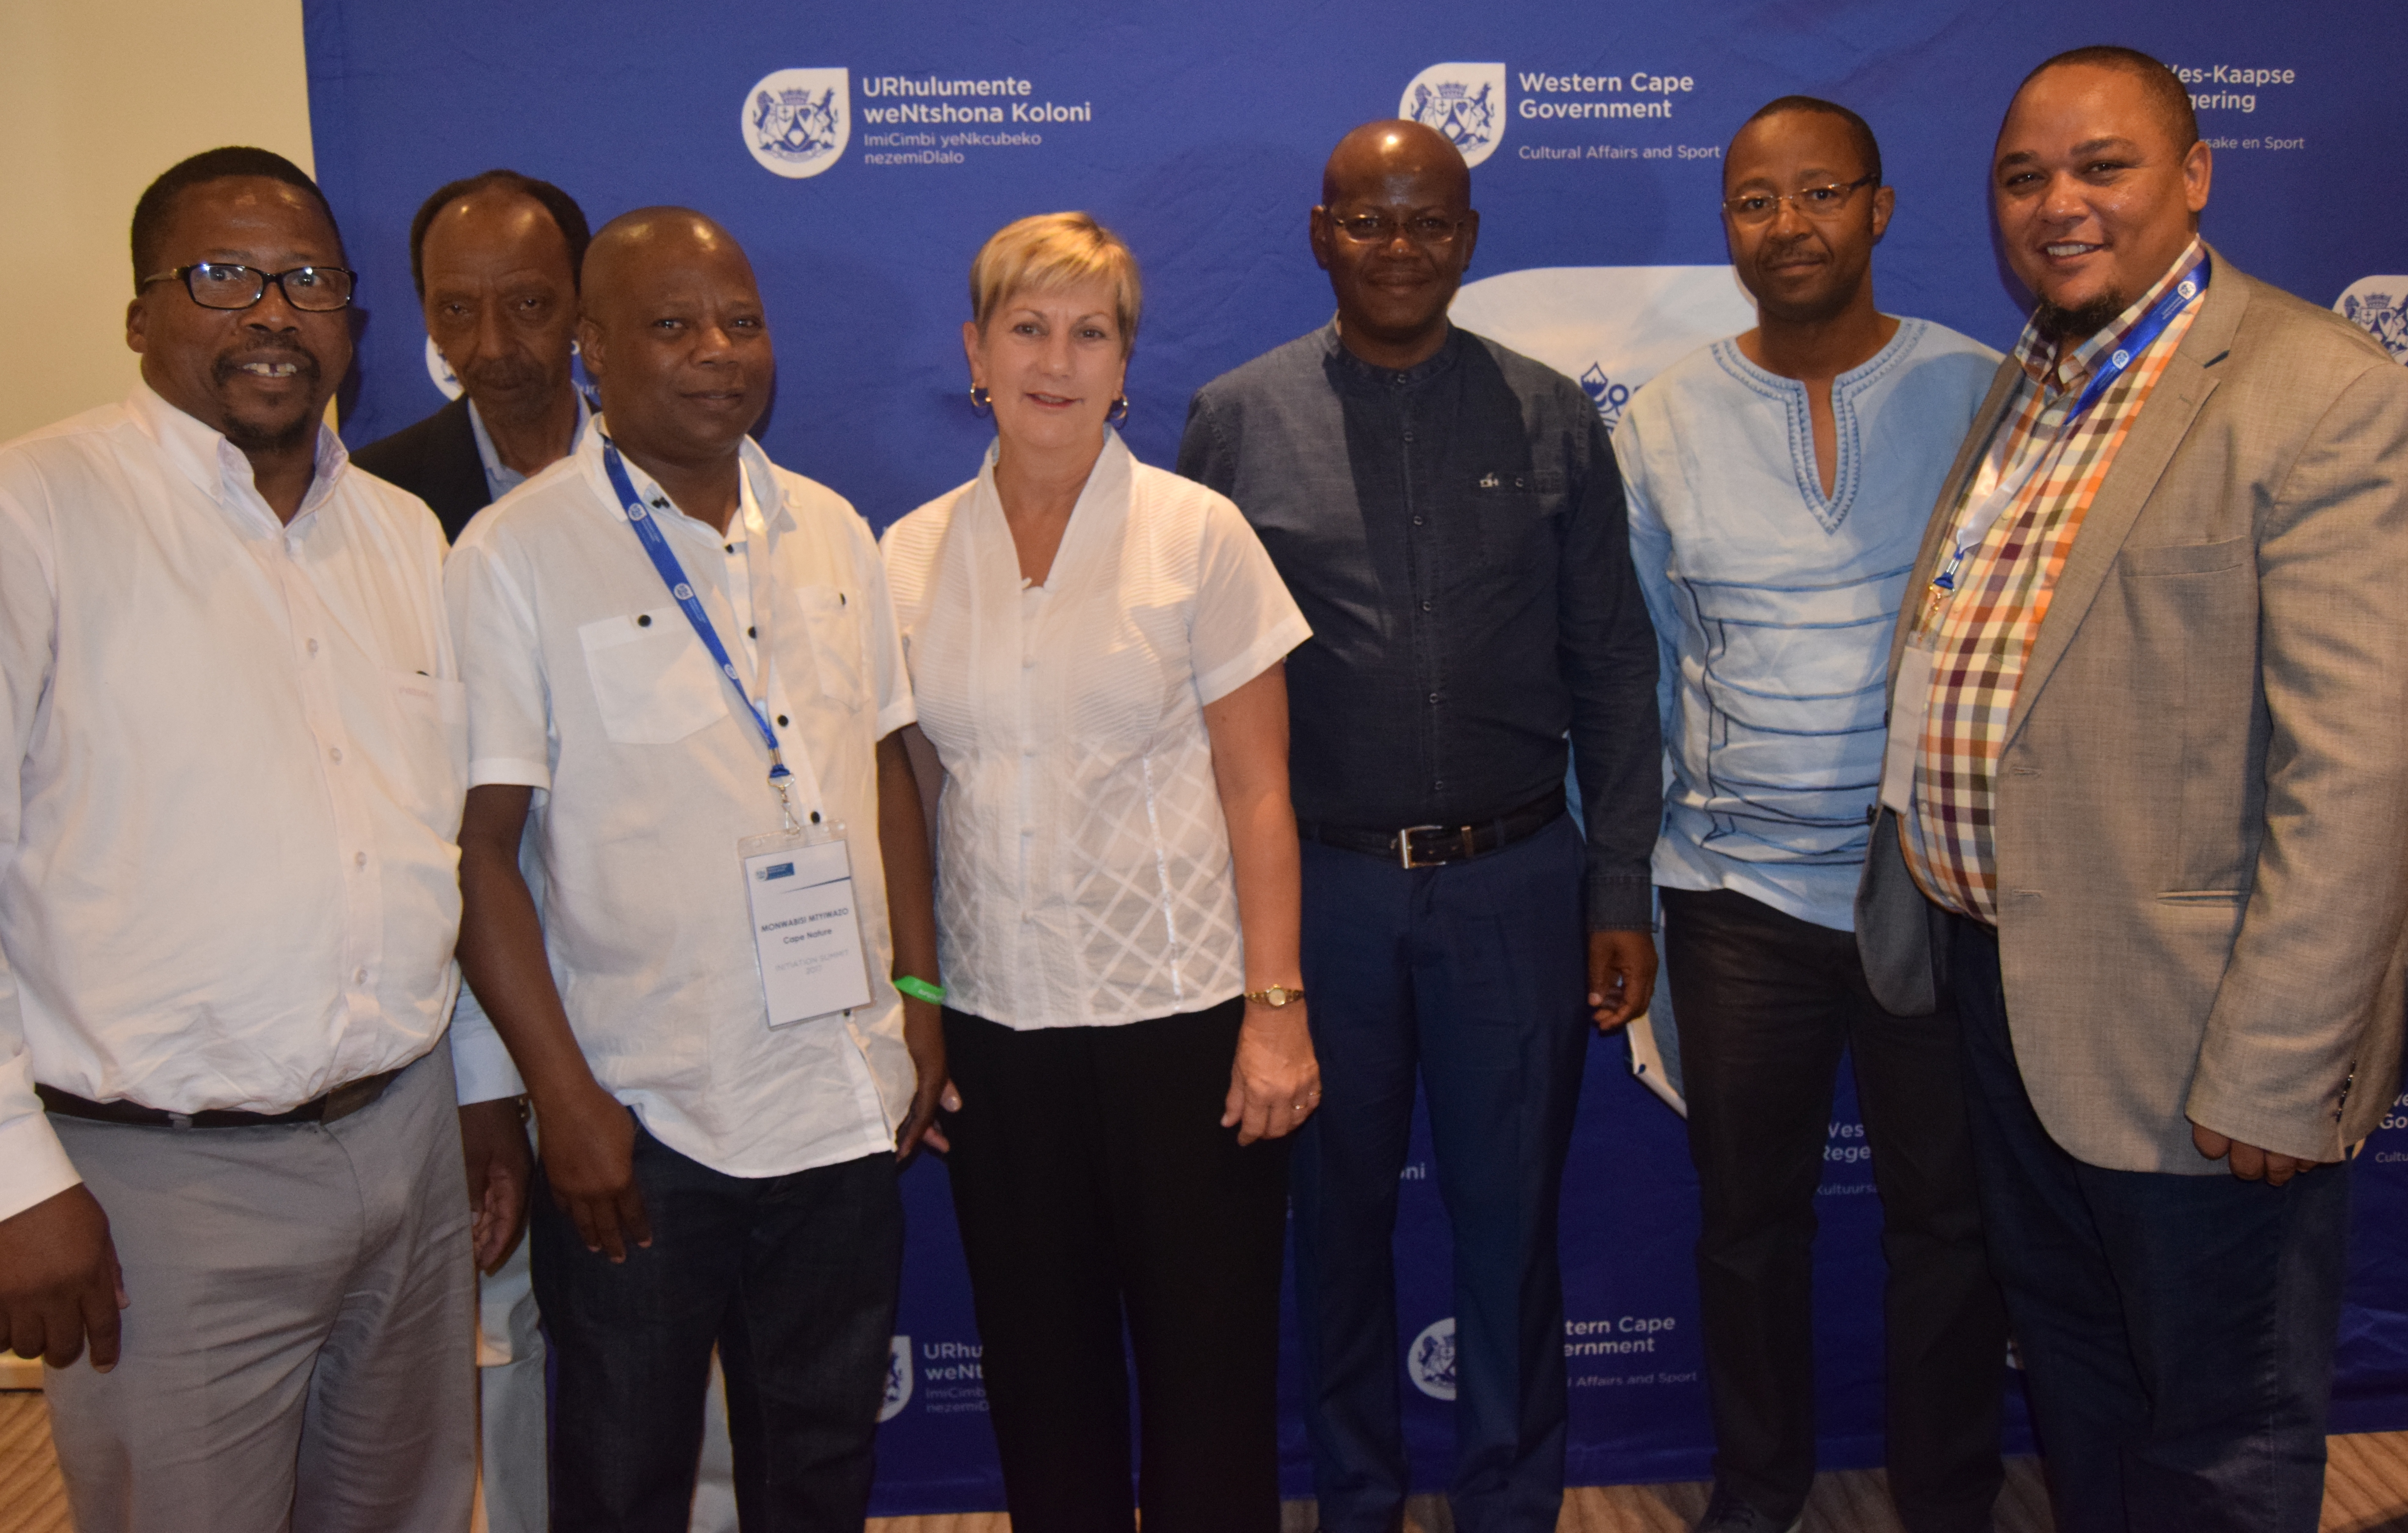 Minister Anroux Marais with Clement Williams, Msokoli Qotole, Monwabisi Mtyiwazo, Sam Khandlela, Prof Ralarala and Guy Redman at the Initiation Summit in Cape Town